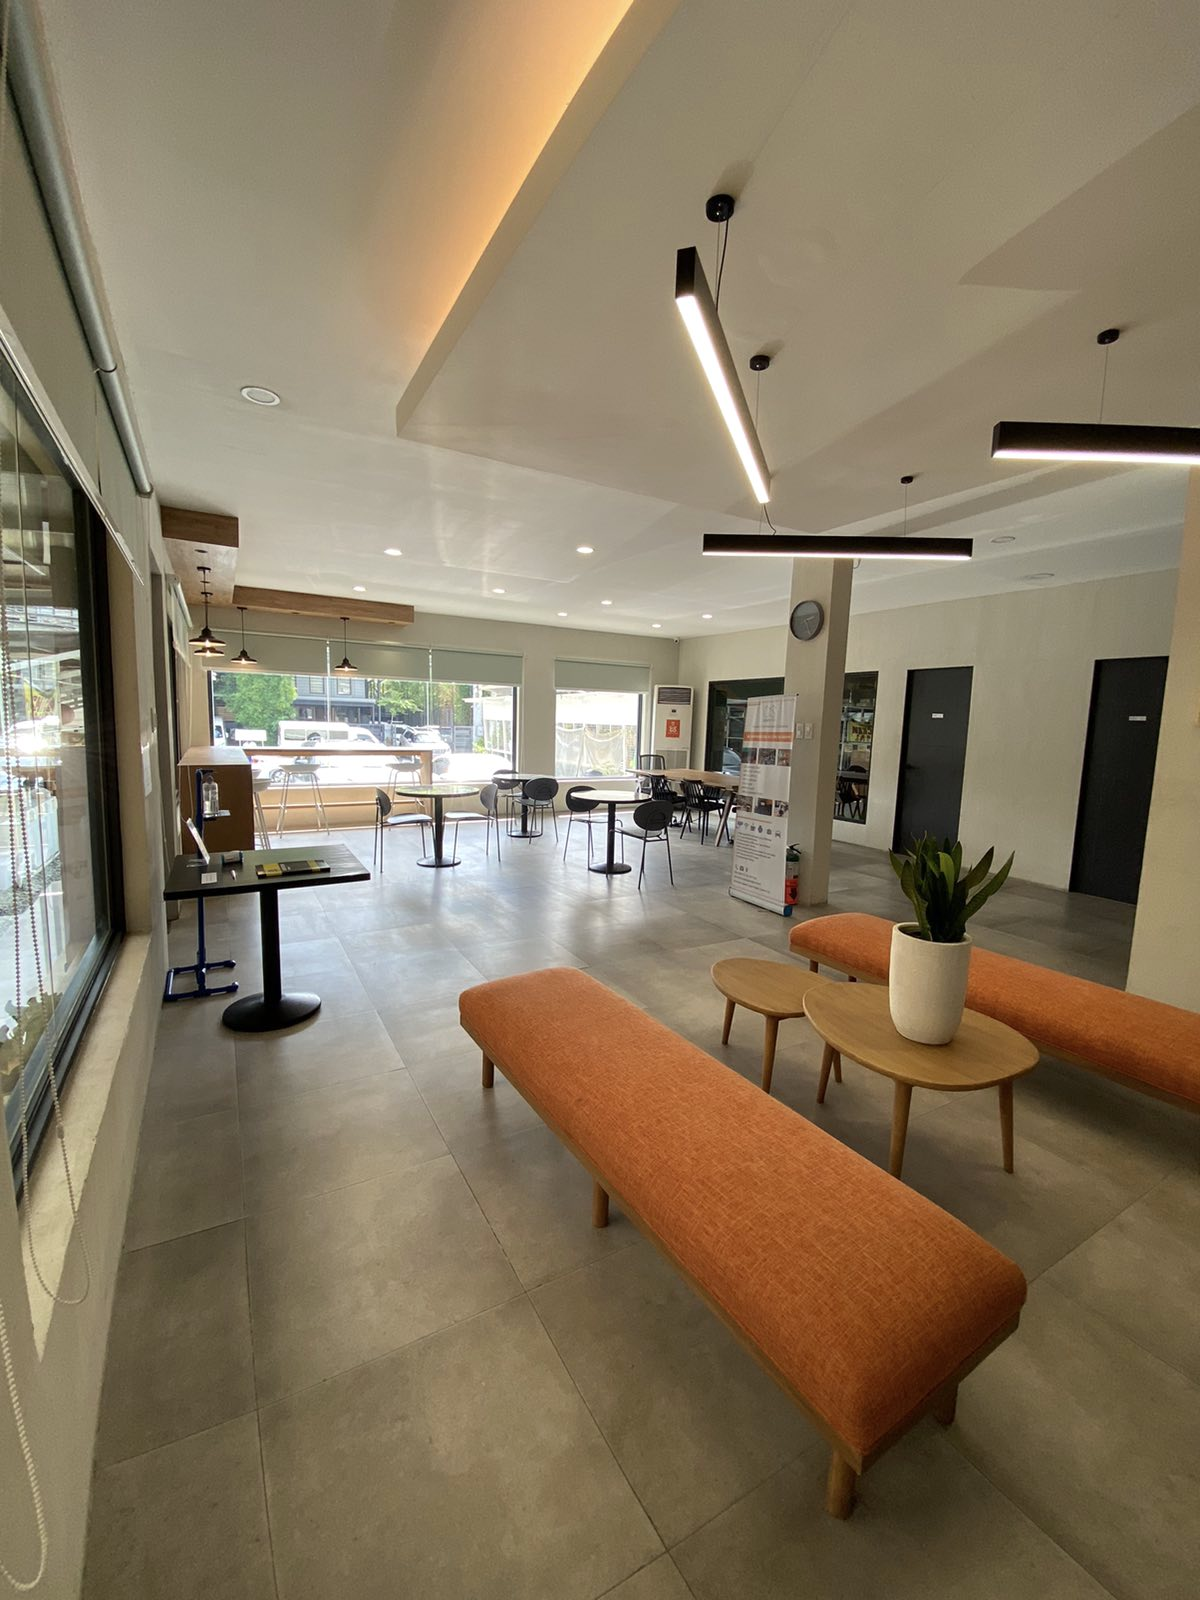 Openspace provides clients with well-lit, conducive spaces that make up the sizeable property